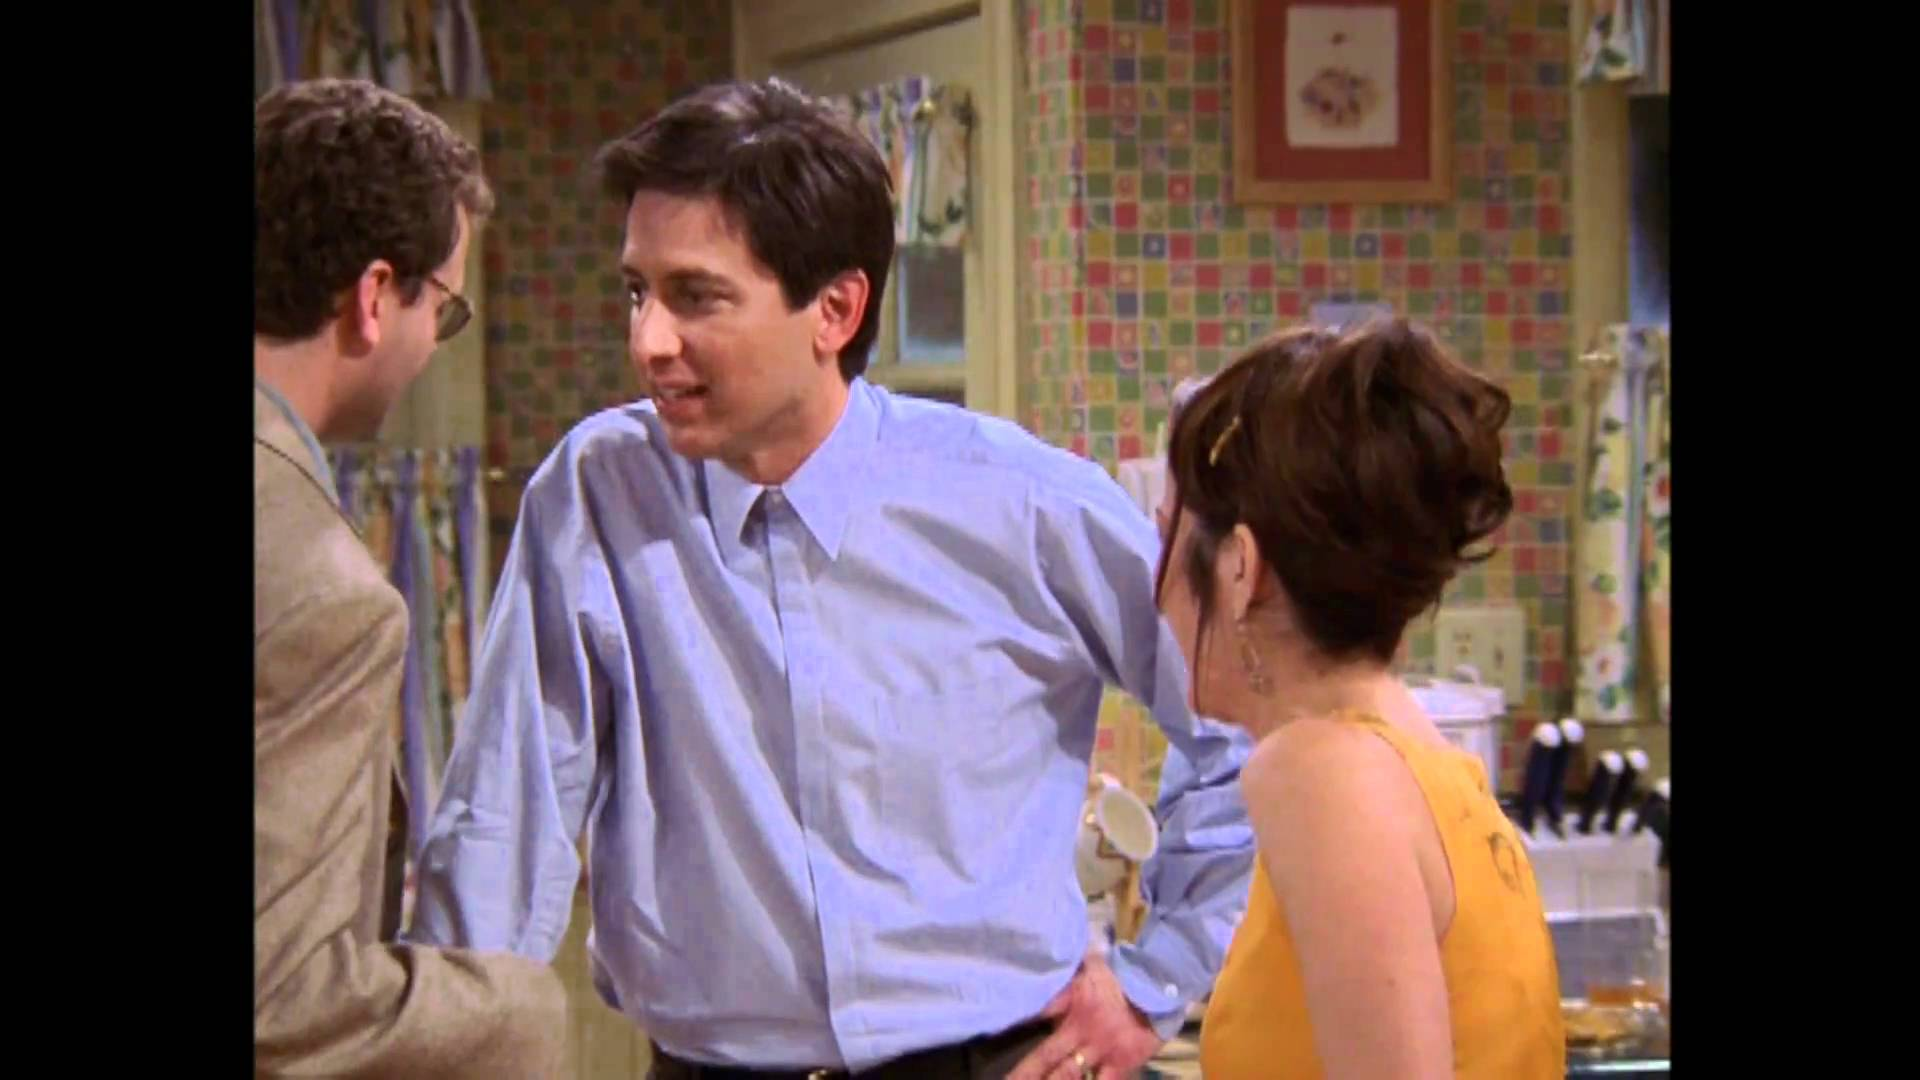 Vic Dibitetto Wallpapers Bloopers from Everybody Loves Raymond Season EverybodyLovesItalian